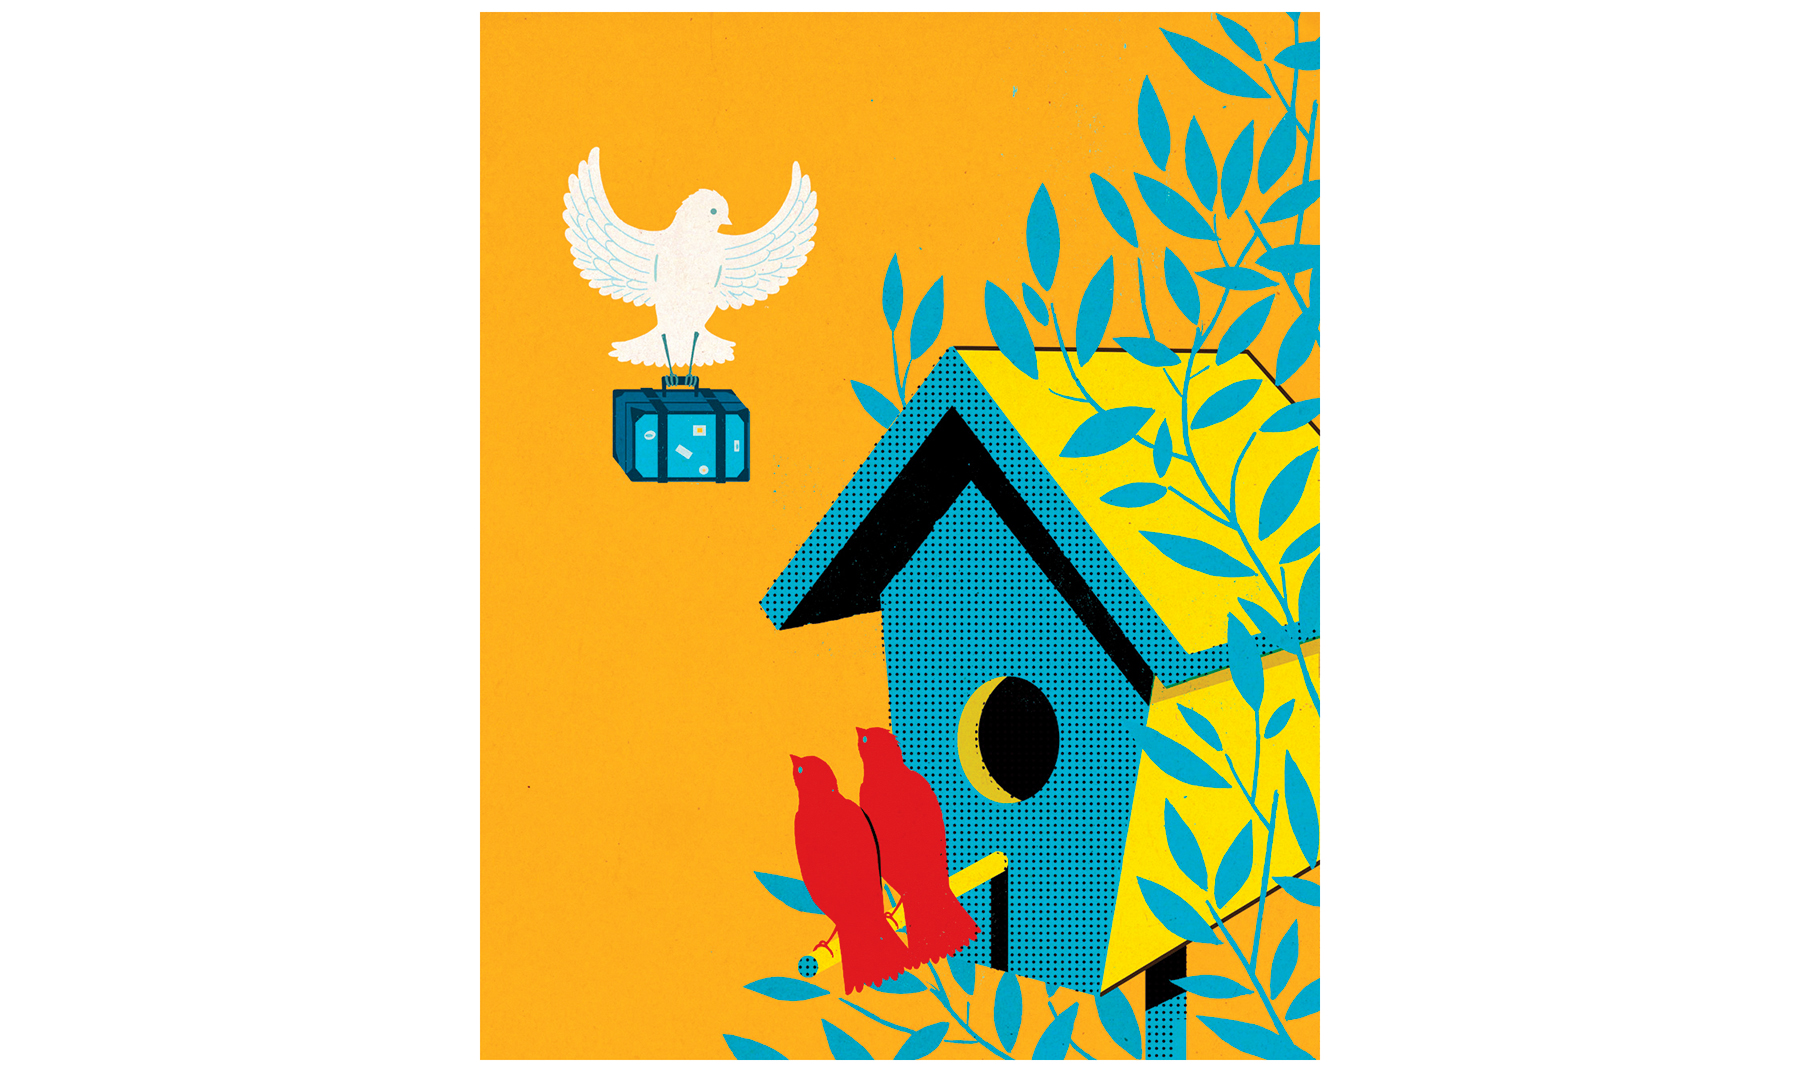 Illustration: Bird house with guests